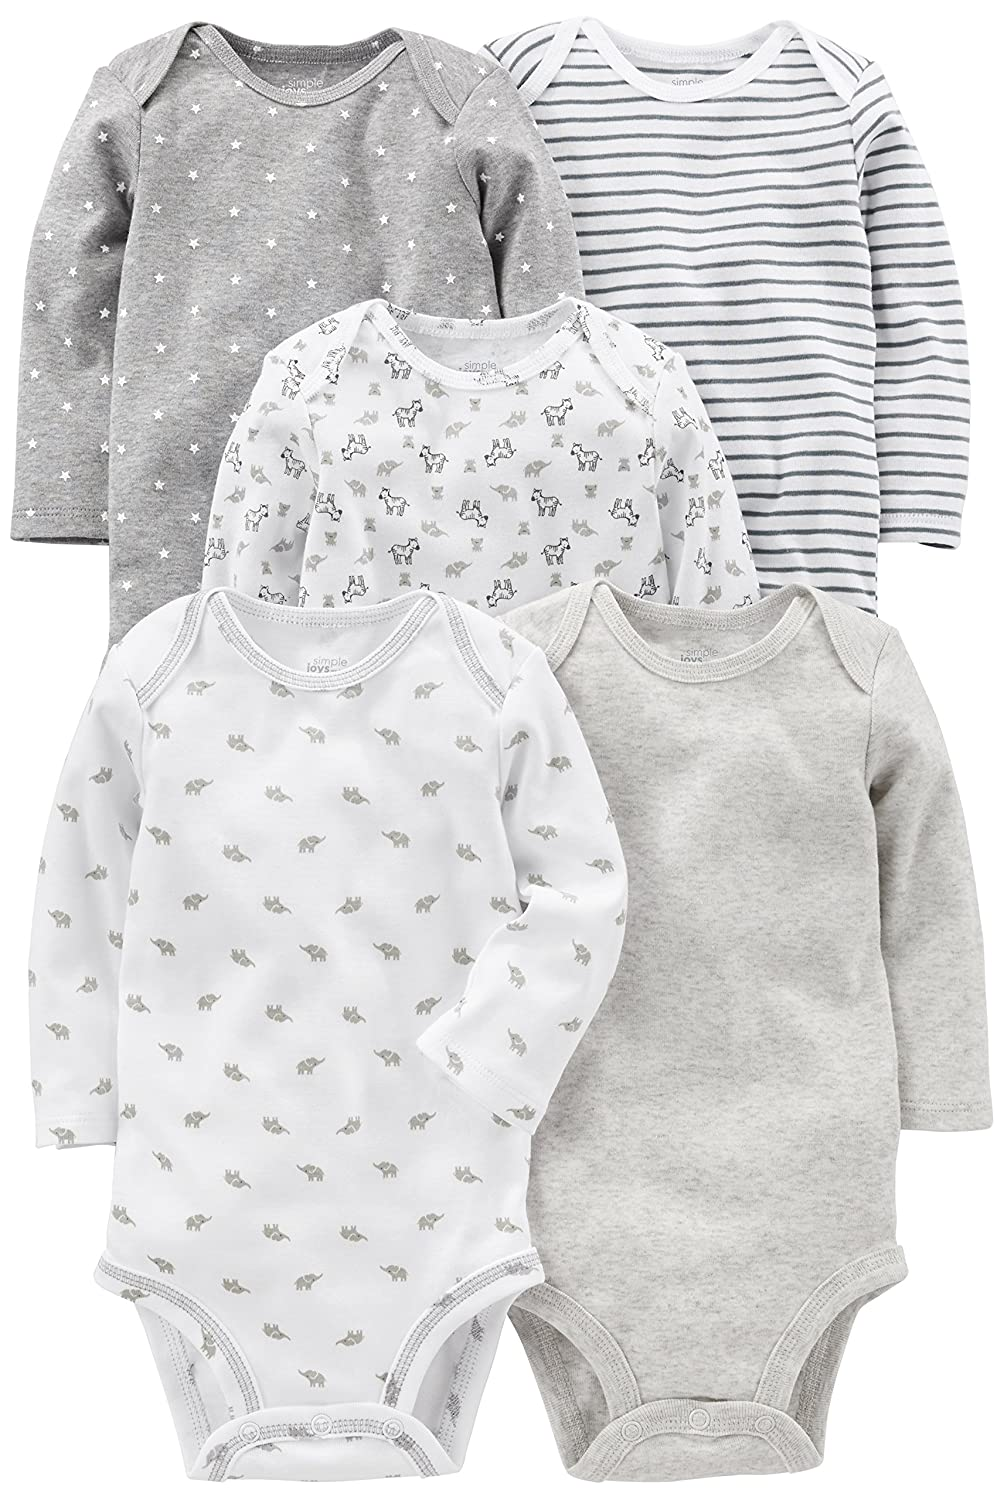 Simple Joys by Carter's Baby 5-Pack Long-Sleeve Bodysuit Simple Joys by Carter's